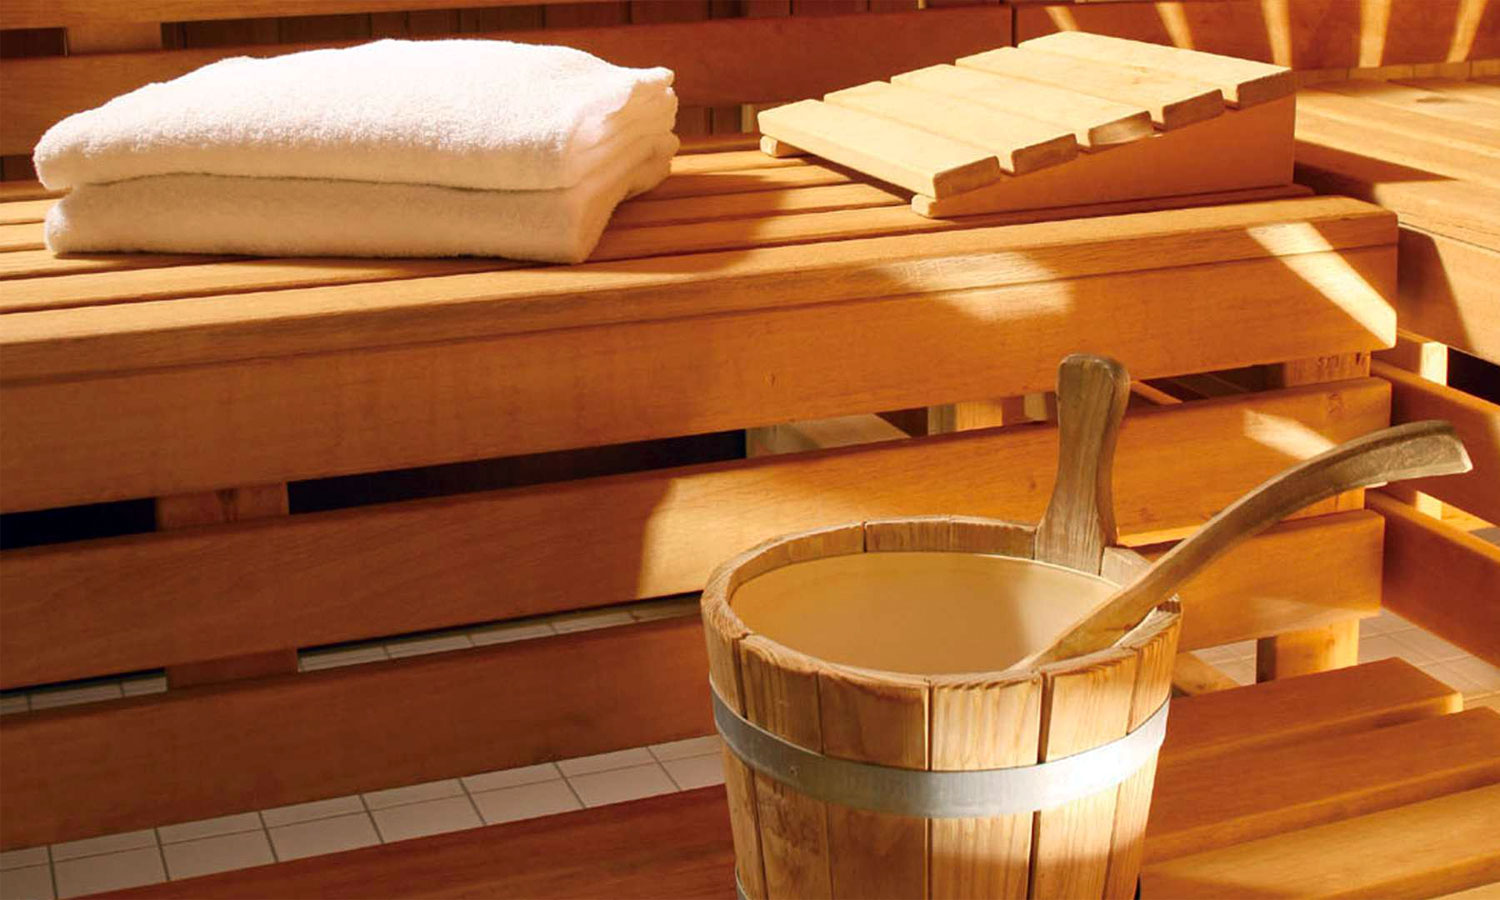 Differenza tra sauna e bagno turco